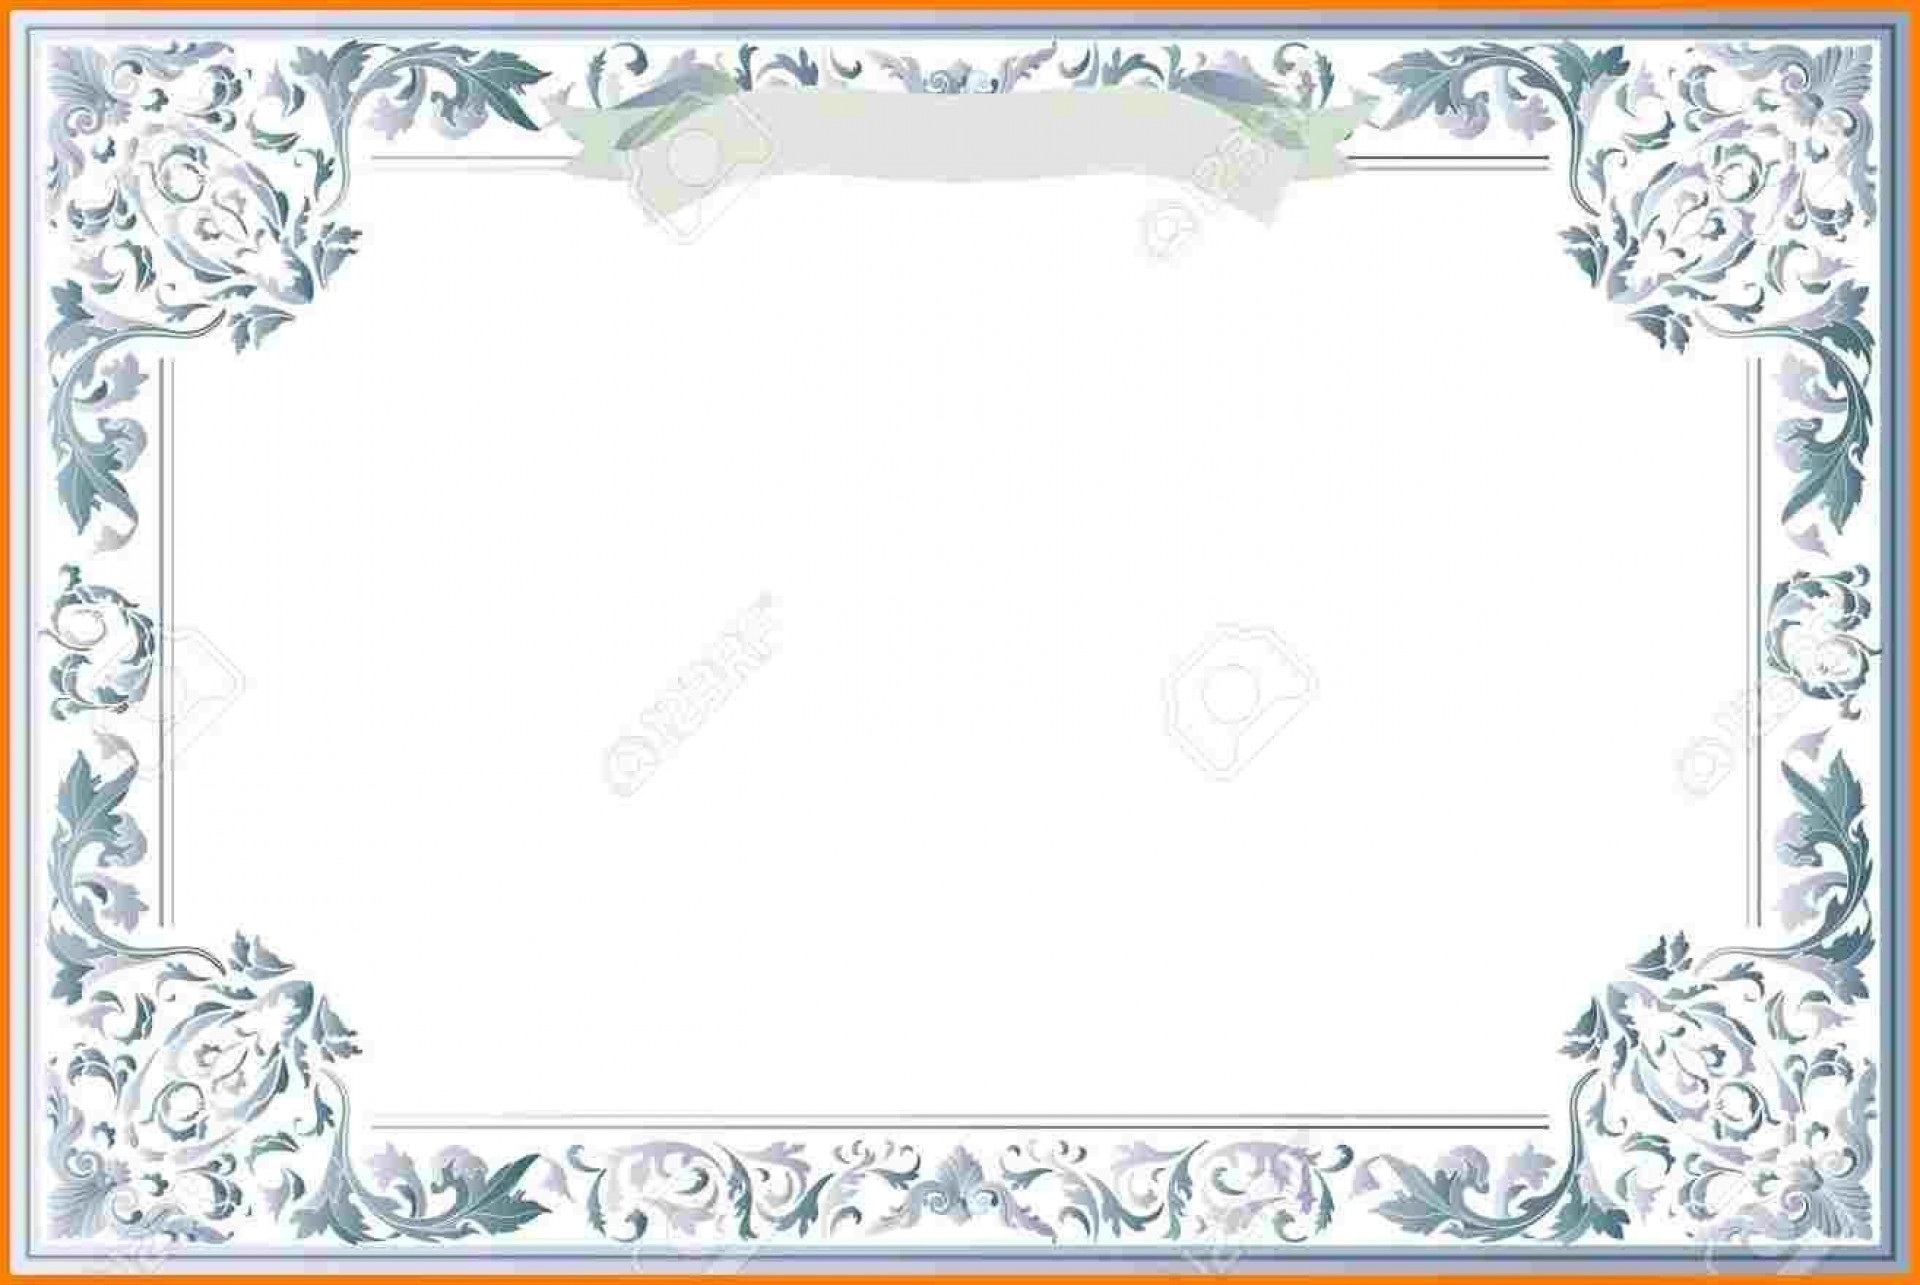 010 Exceptional Free Printable Blank Certificate Template Design  Templates Gift Of Achievement1920